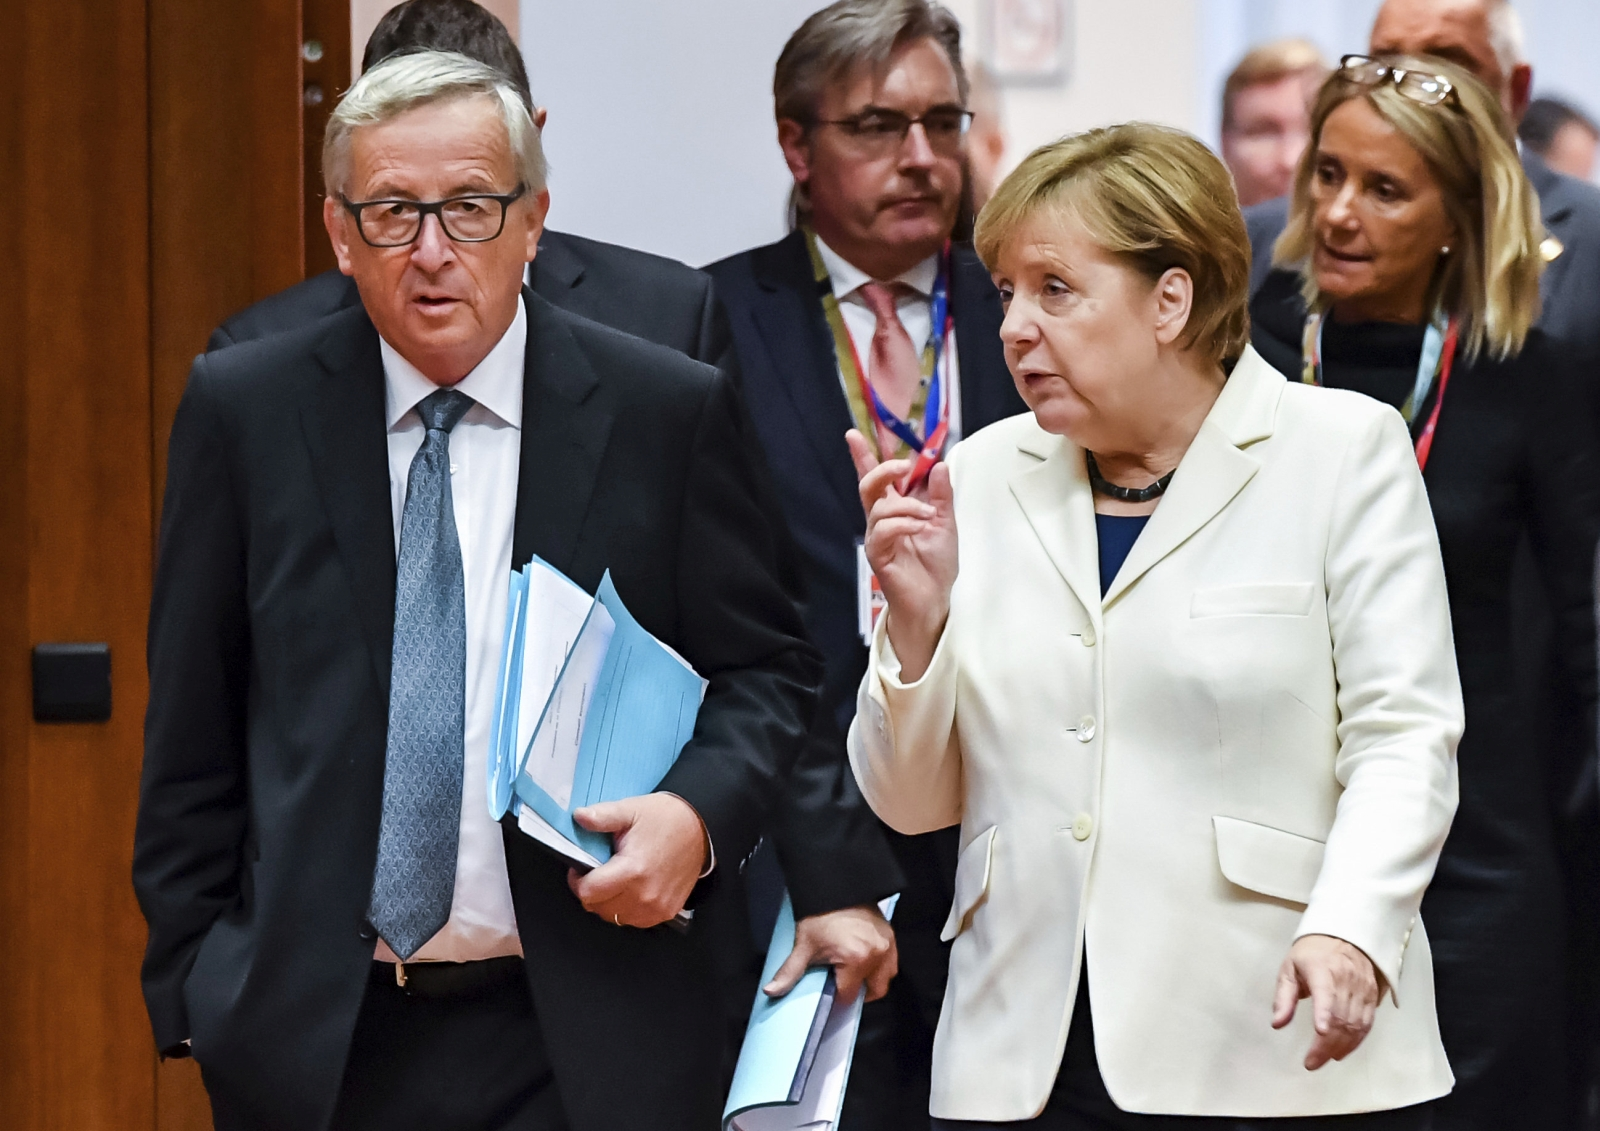 German Chancellor Angela Merkel, right, speaks with European Commission President Jean-Claude Juncker during a round table meeting at an EU summit in Brussels on Friday, Oct. 20, 2017. European Union leaders gathered Friday to weigh progress in negotiations on Britain's departure from their club as they look for new ways to speed up the painfully slow moving process. (AP Photo/Geert Vanden Wijngaert)